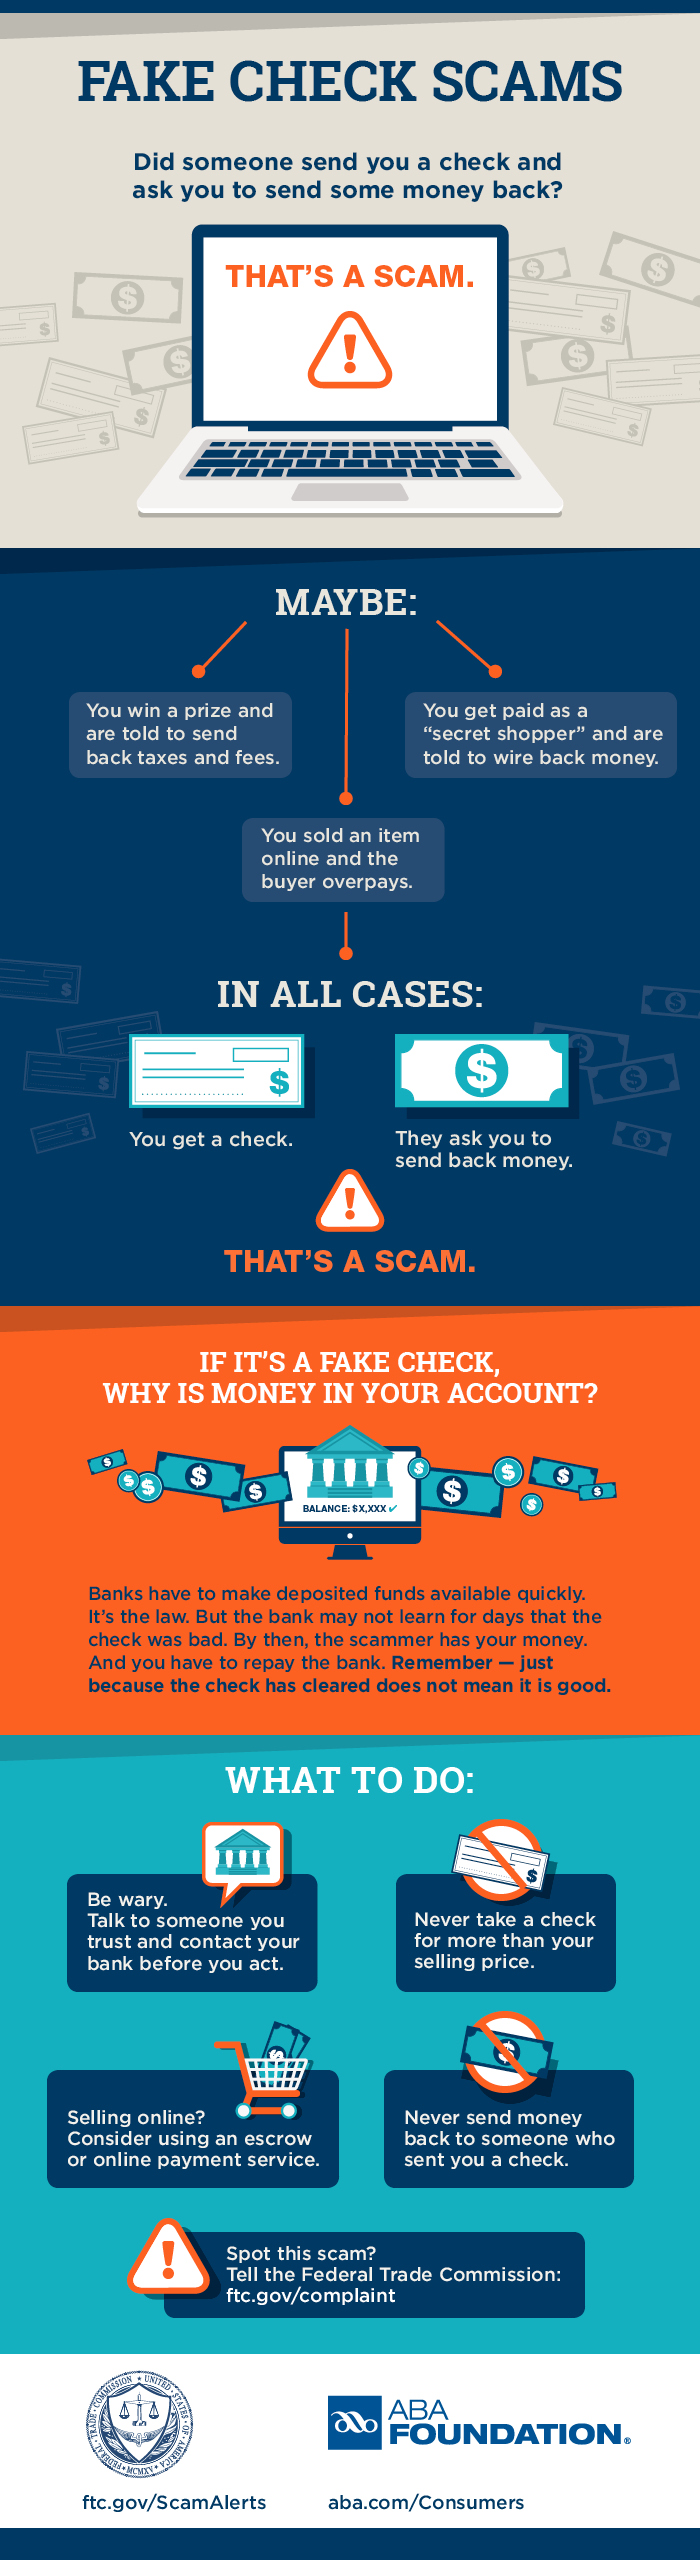 fc554c0df60 Anatomy of a fake check scam | Consumer Information